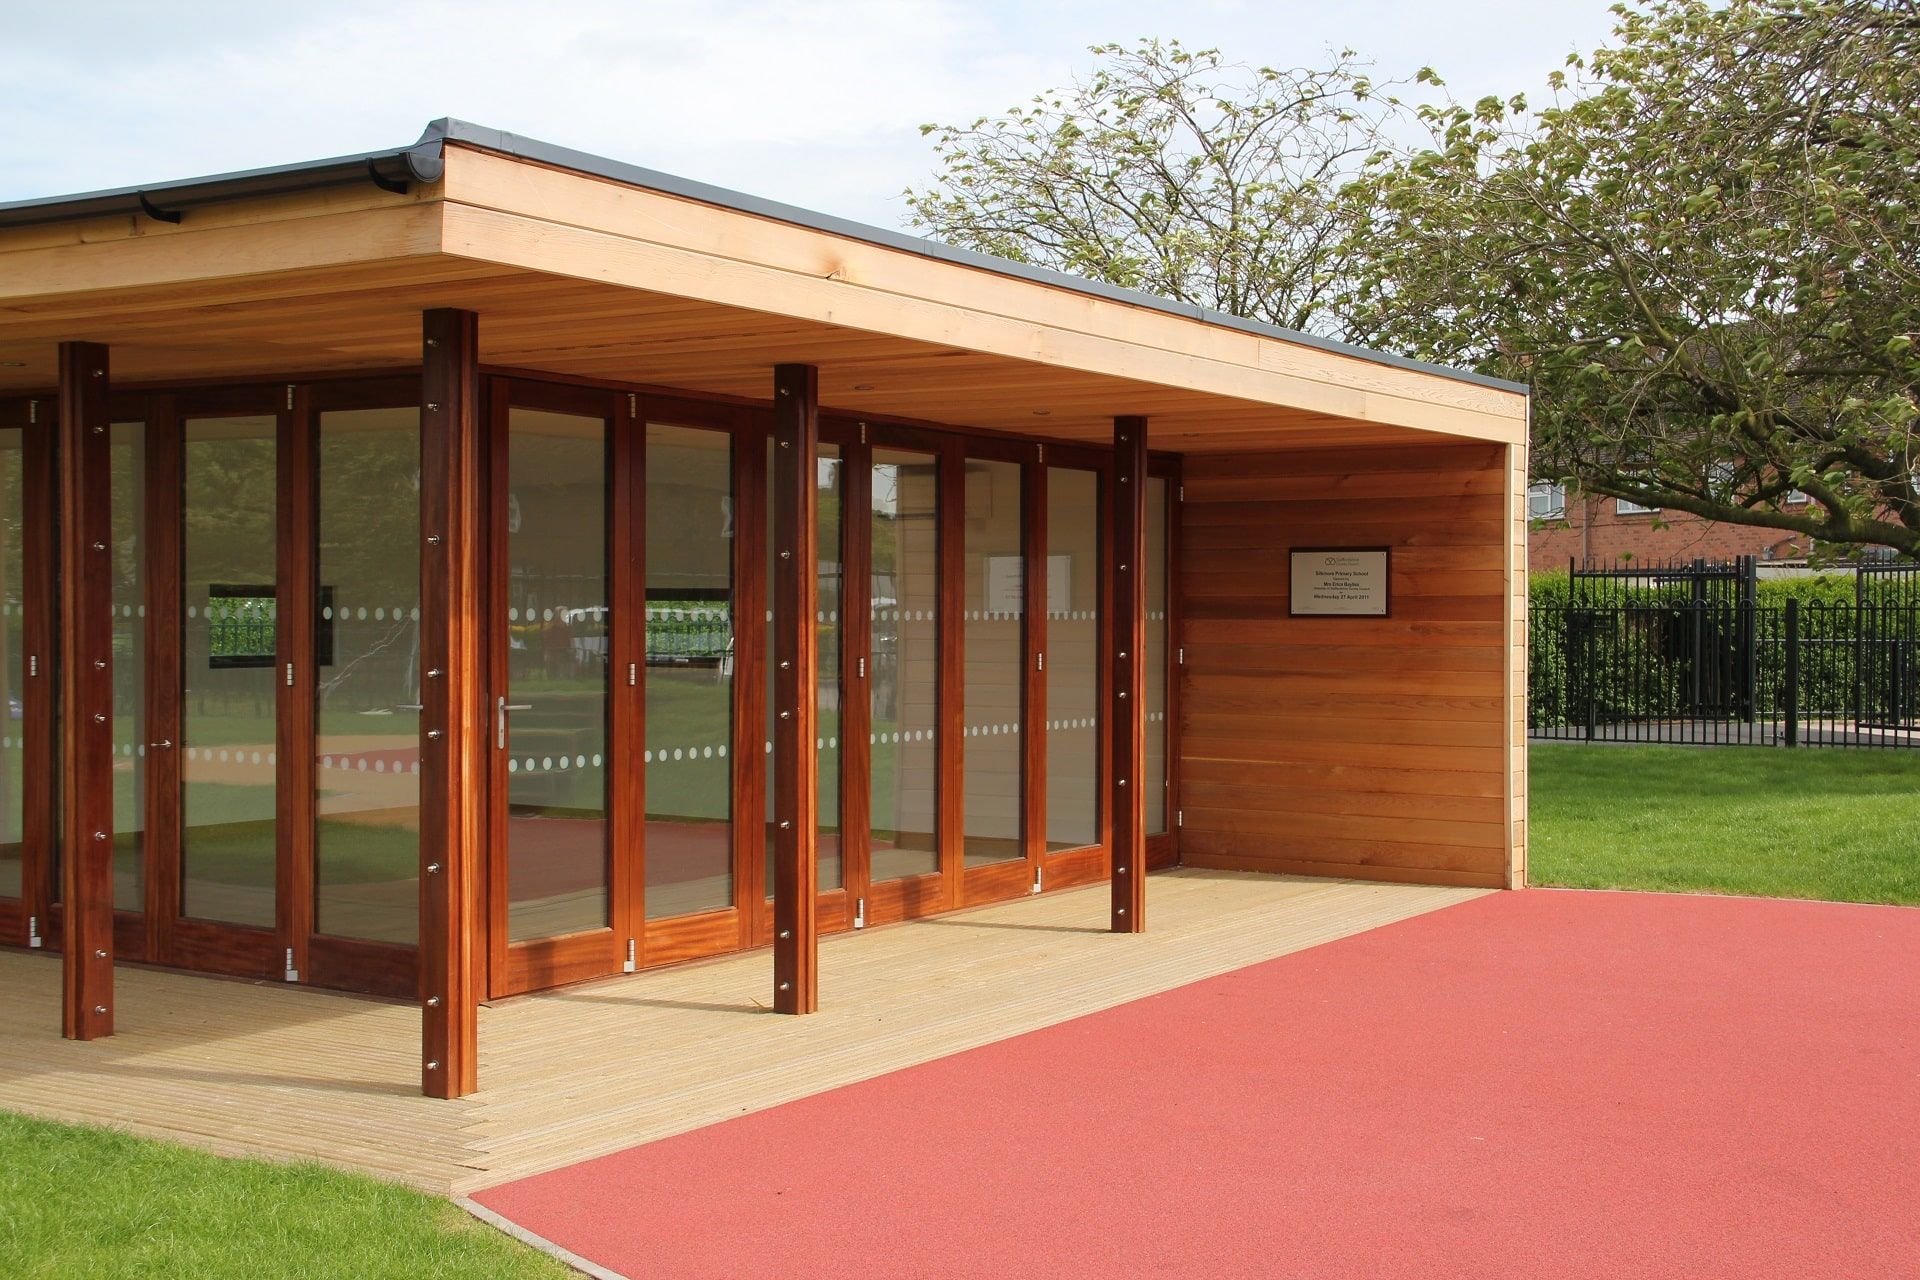 TG Escapes eco classrooms are an affordable solution